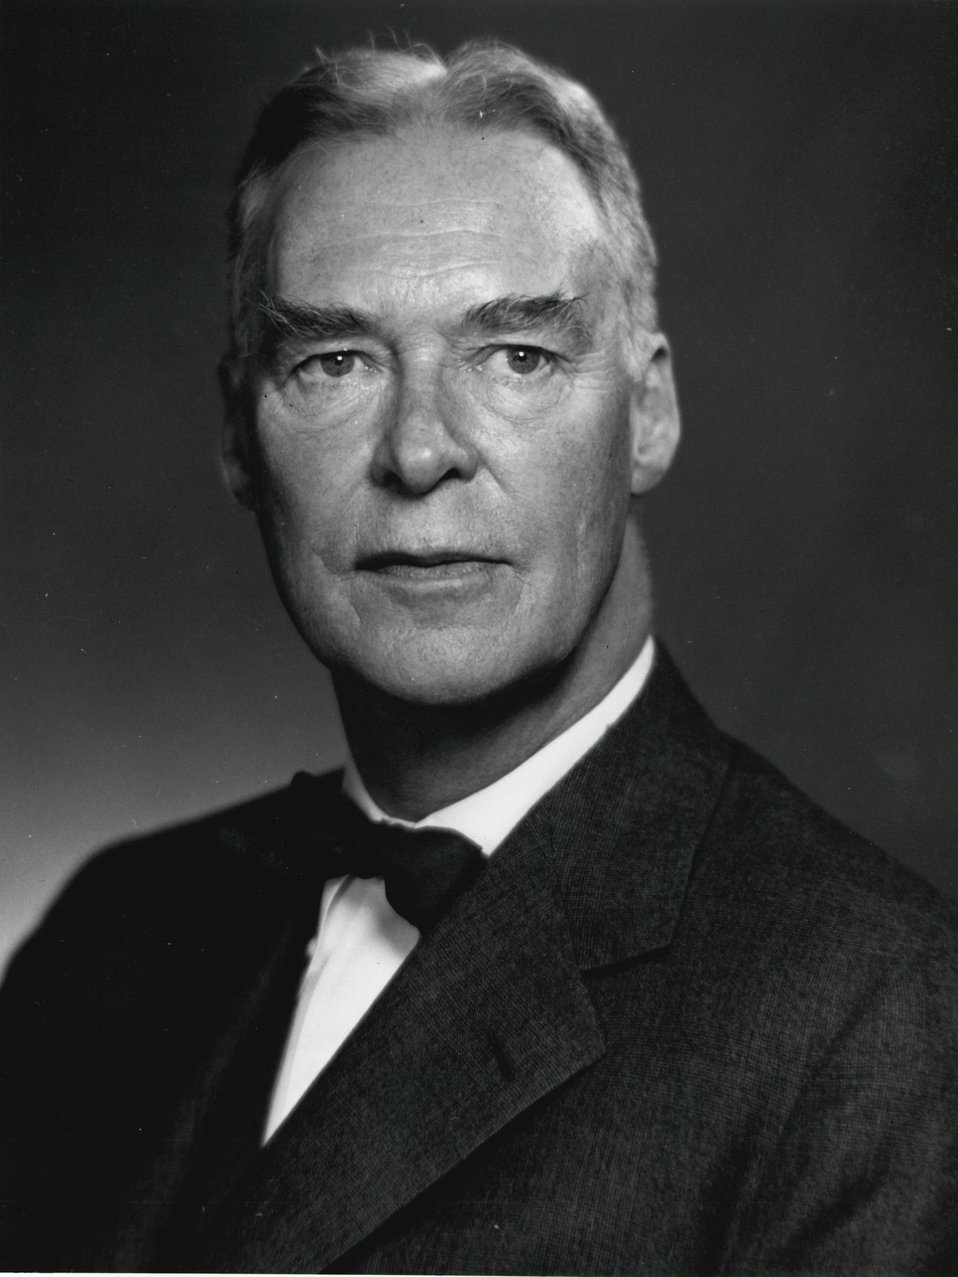 Christian A. Herter, U.S. Secretary of State